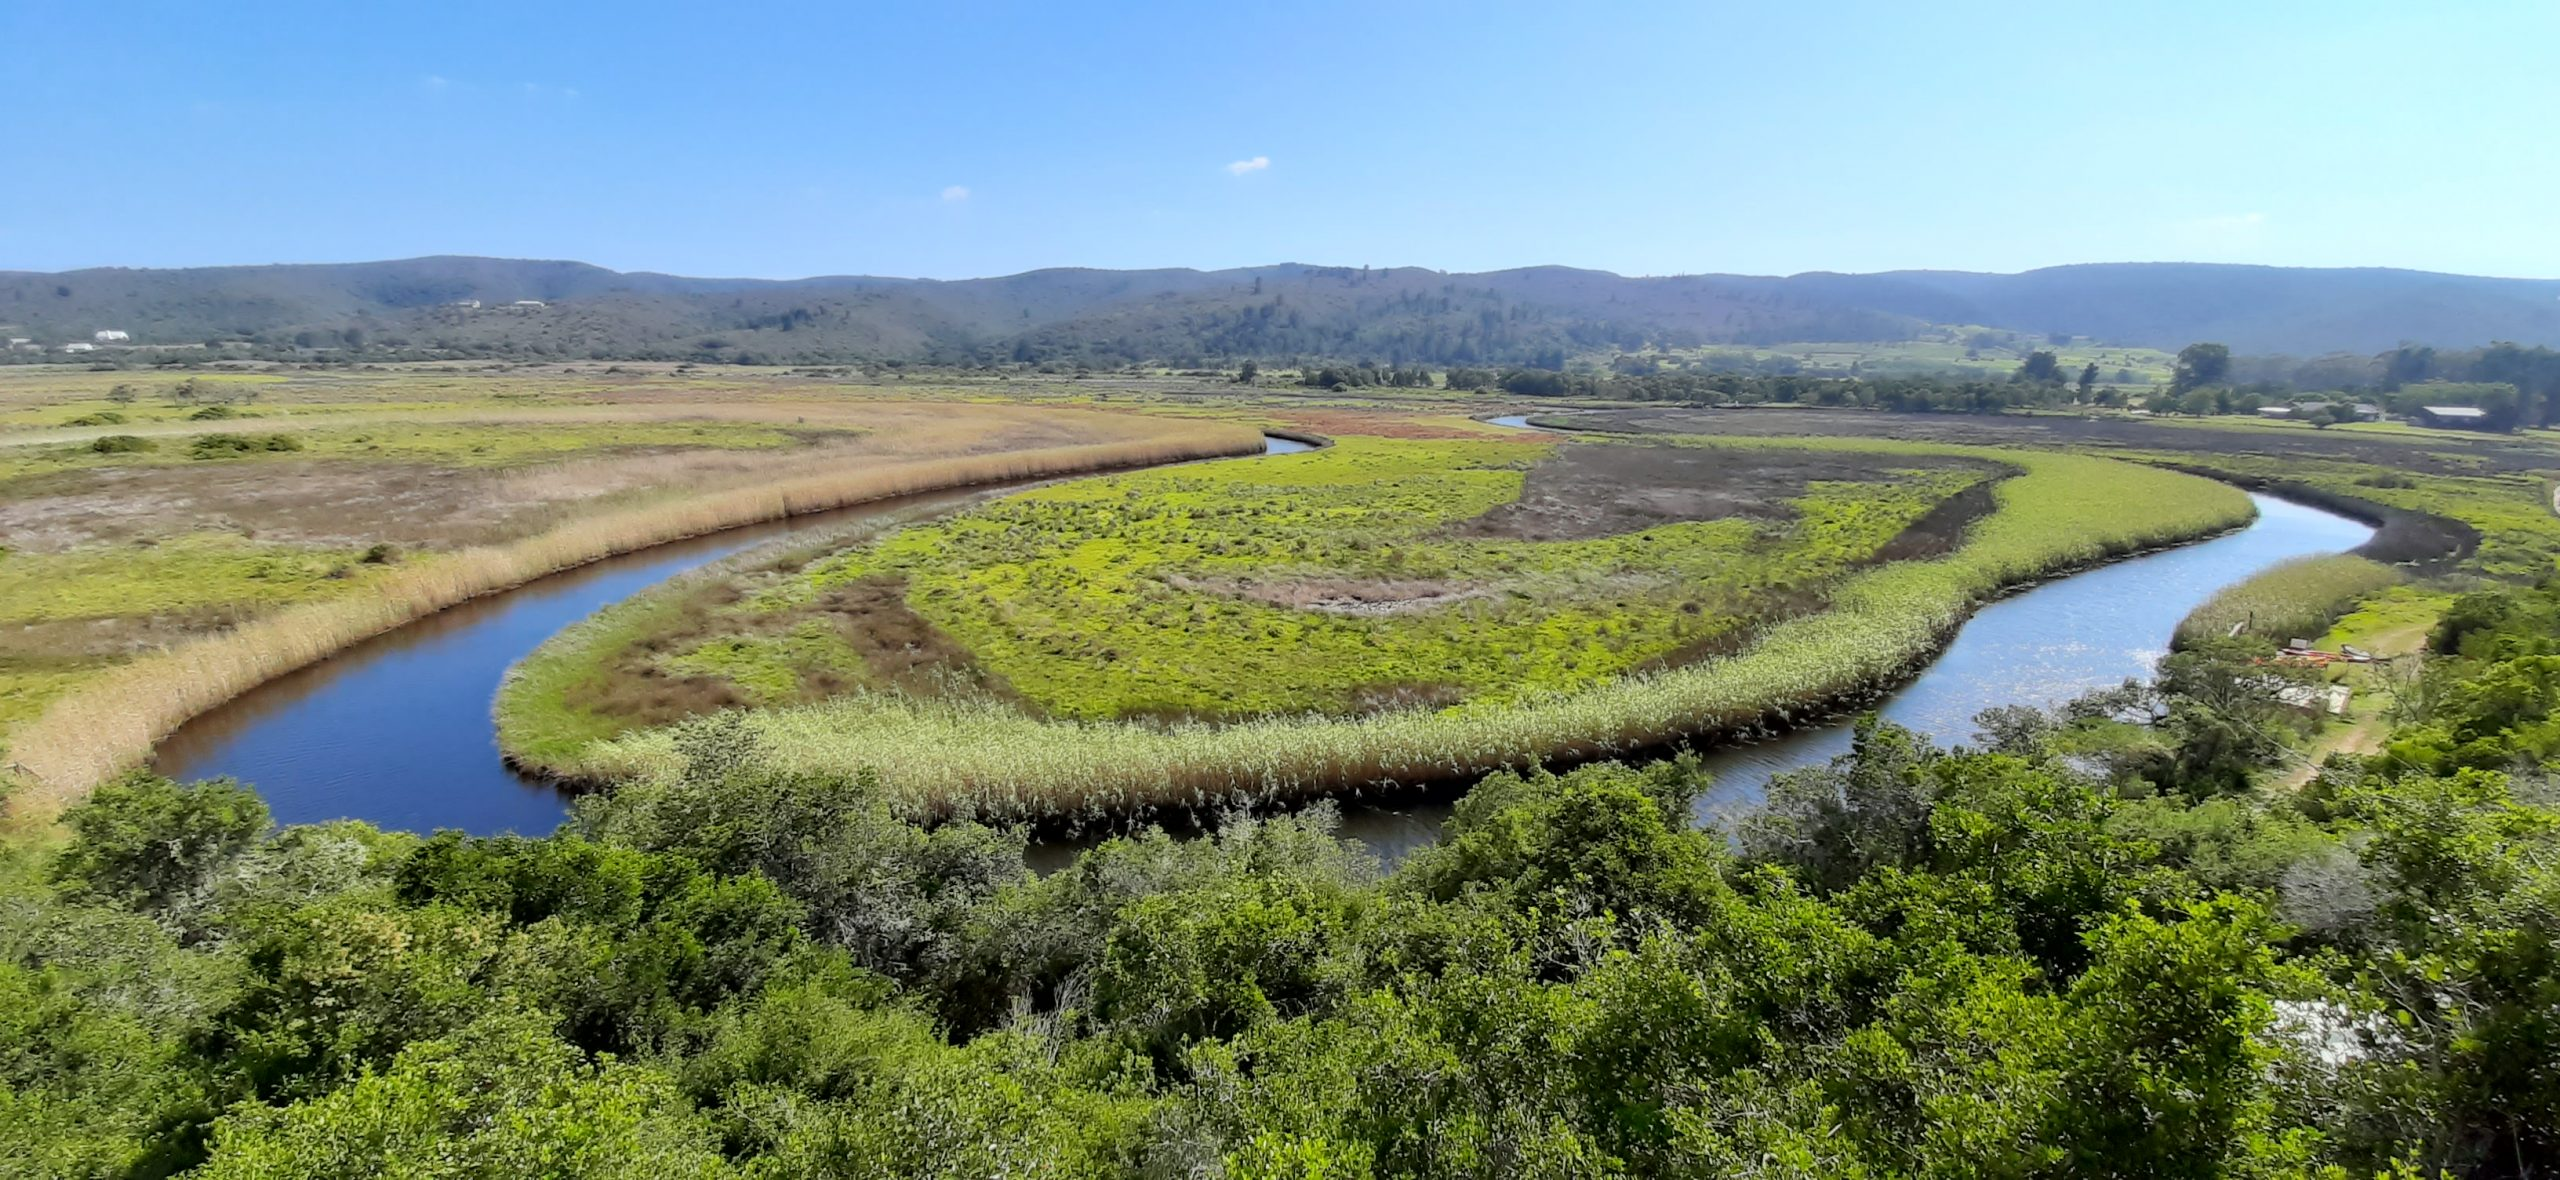 Bitou River Wetland from Emily Moon